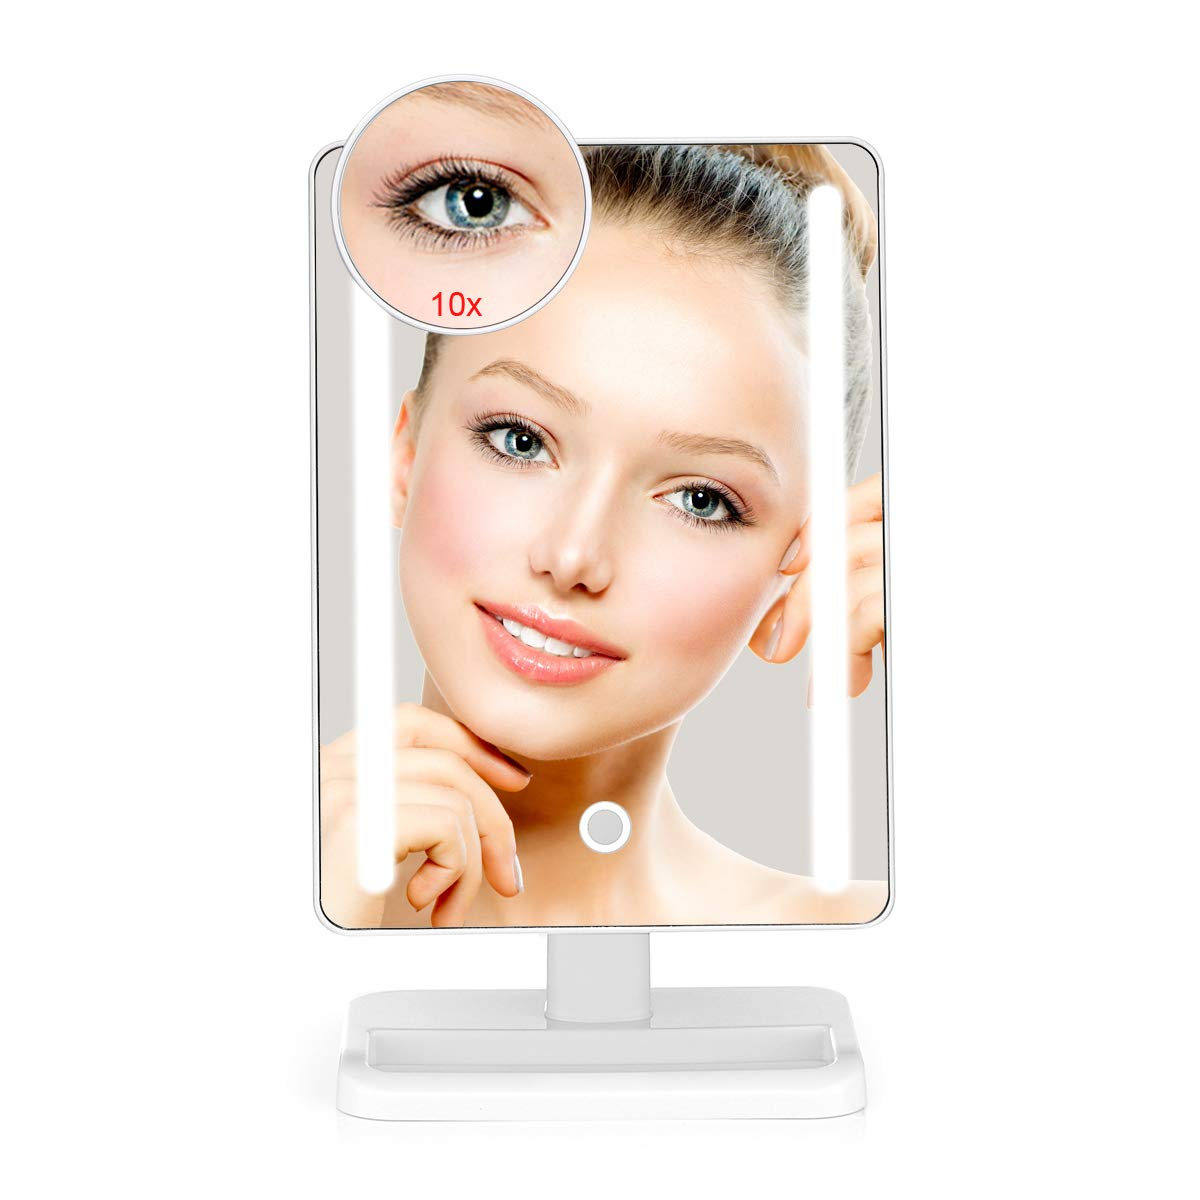 Large Adjustable Lighted Makeup Vanity Mirror with 24 Natural Bright Led Lights, 10x Magnified Mirror, 180 Rotation 12 Inch Touch Screen Dimming Dual Power Supply, Led Desk Cosmetic Mirror, YODA